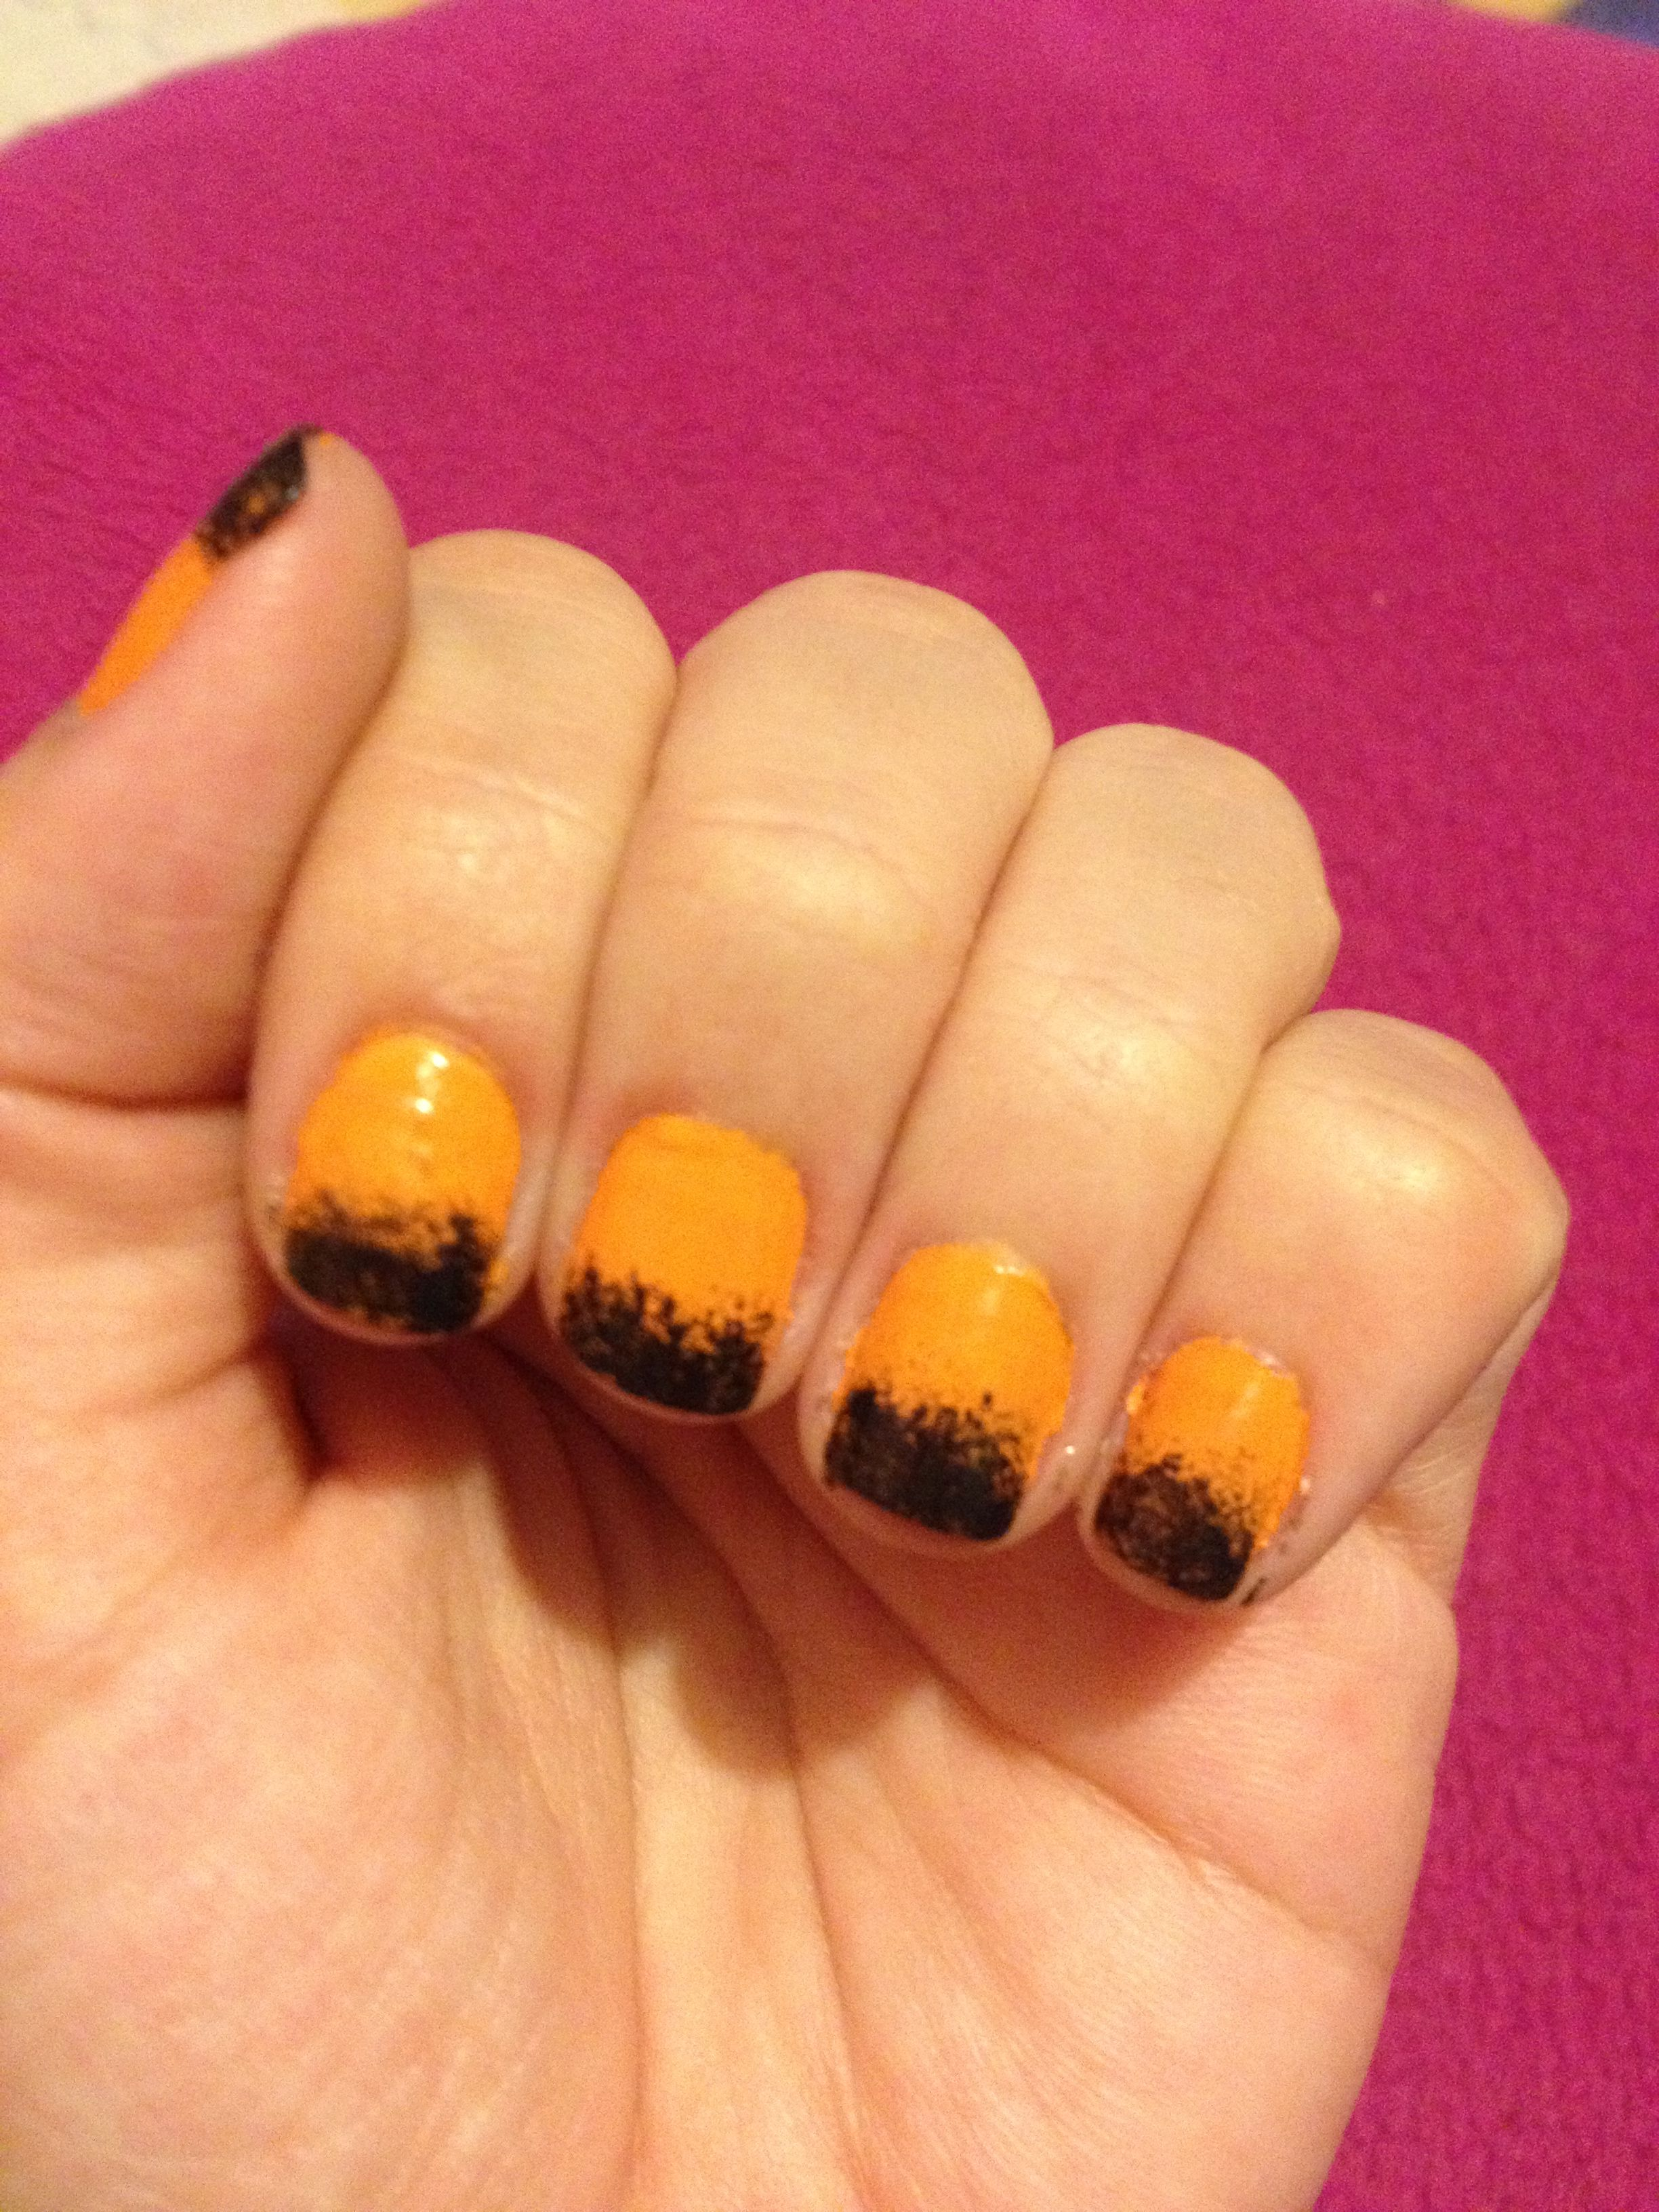 Nails ready for Halloween :)